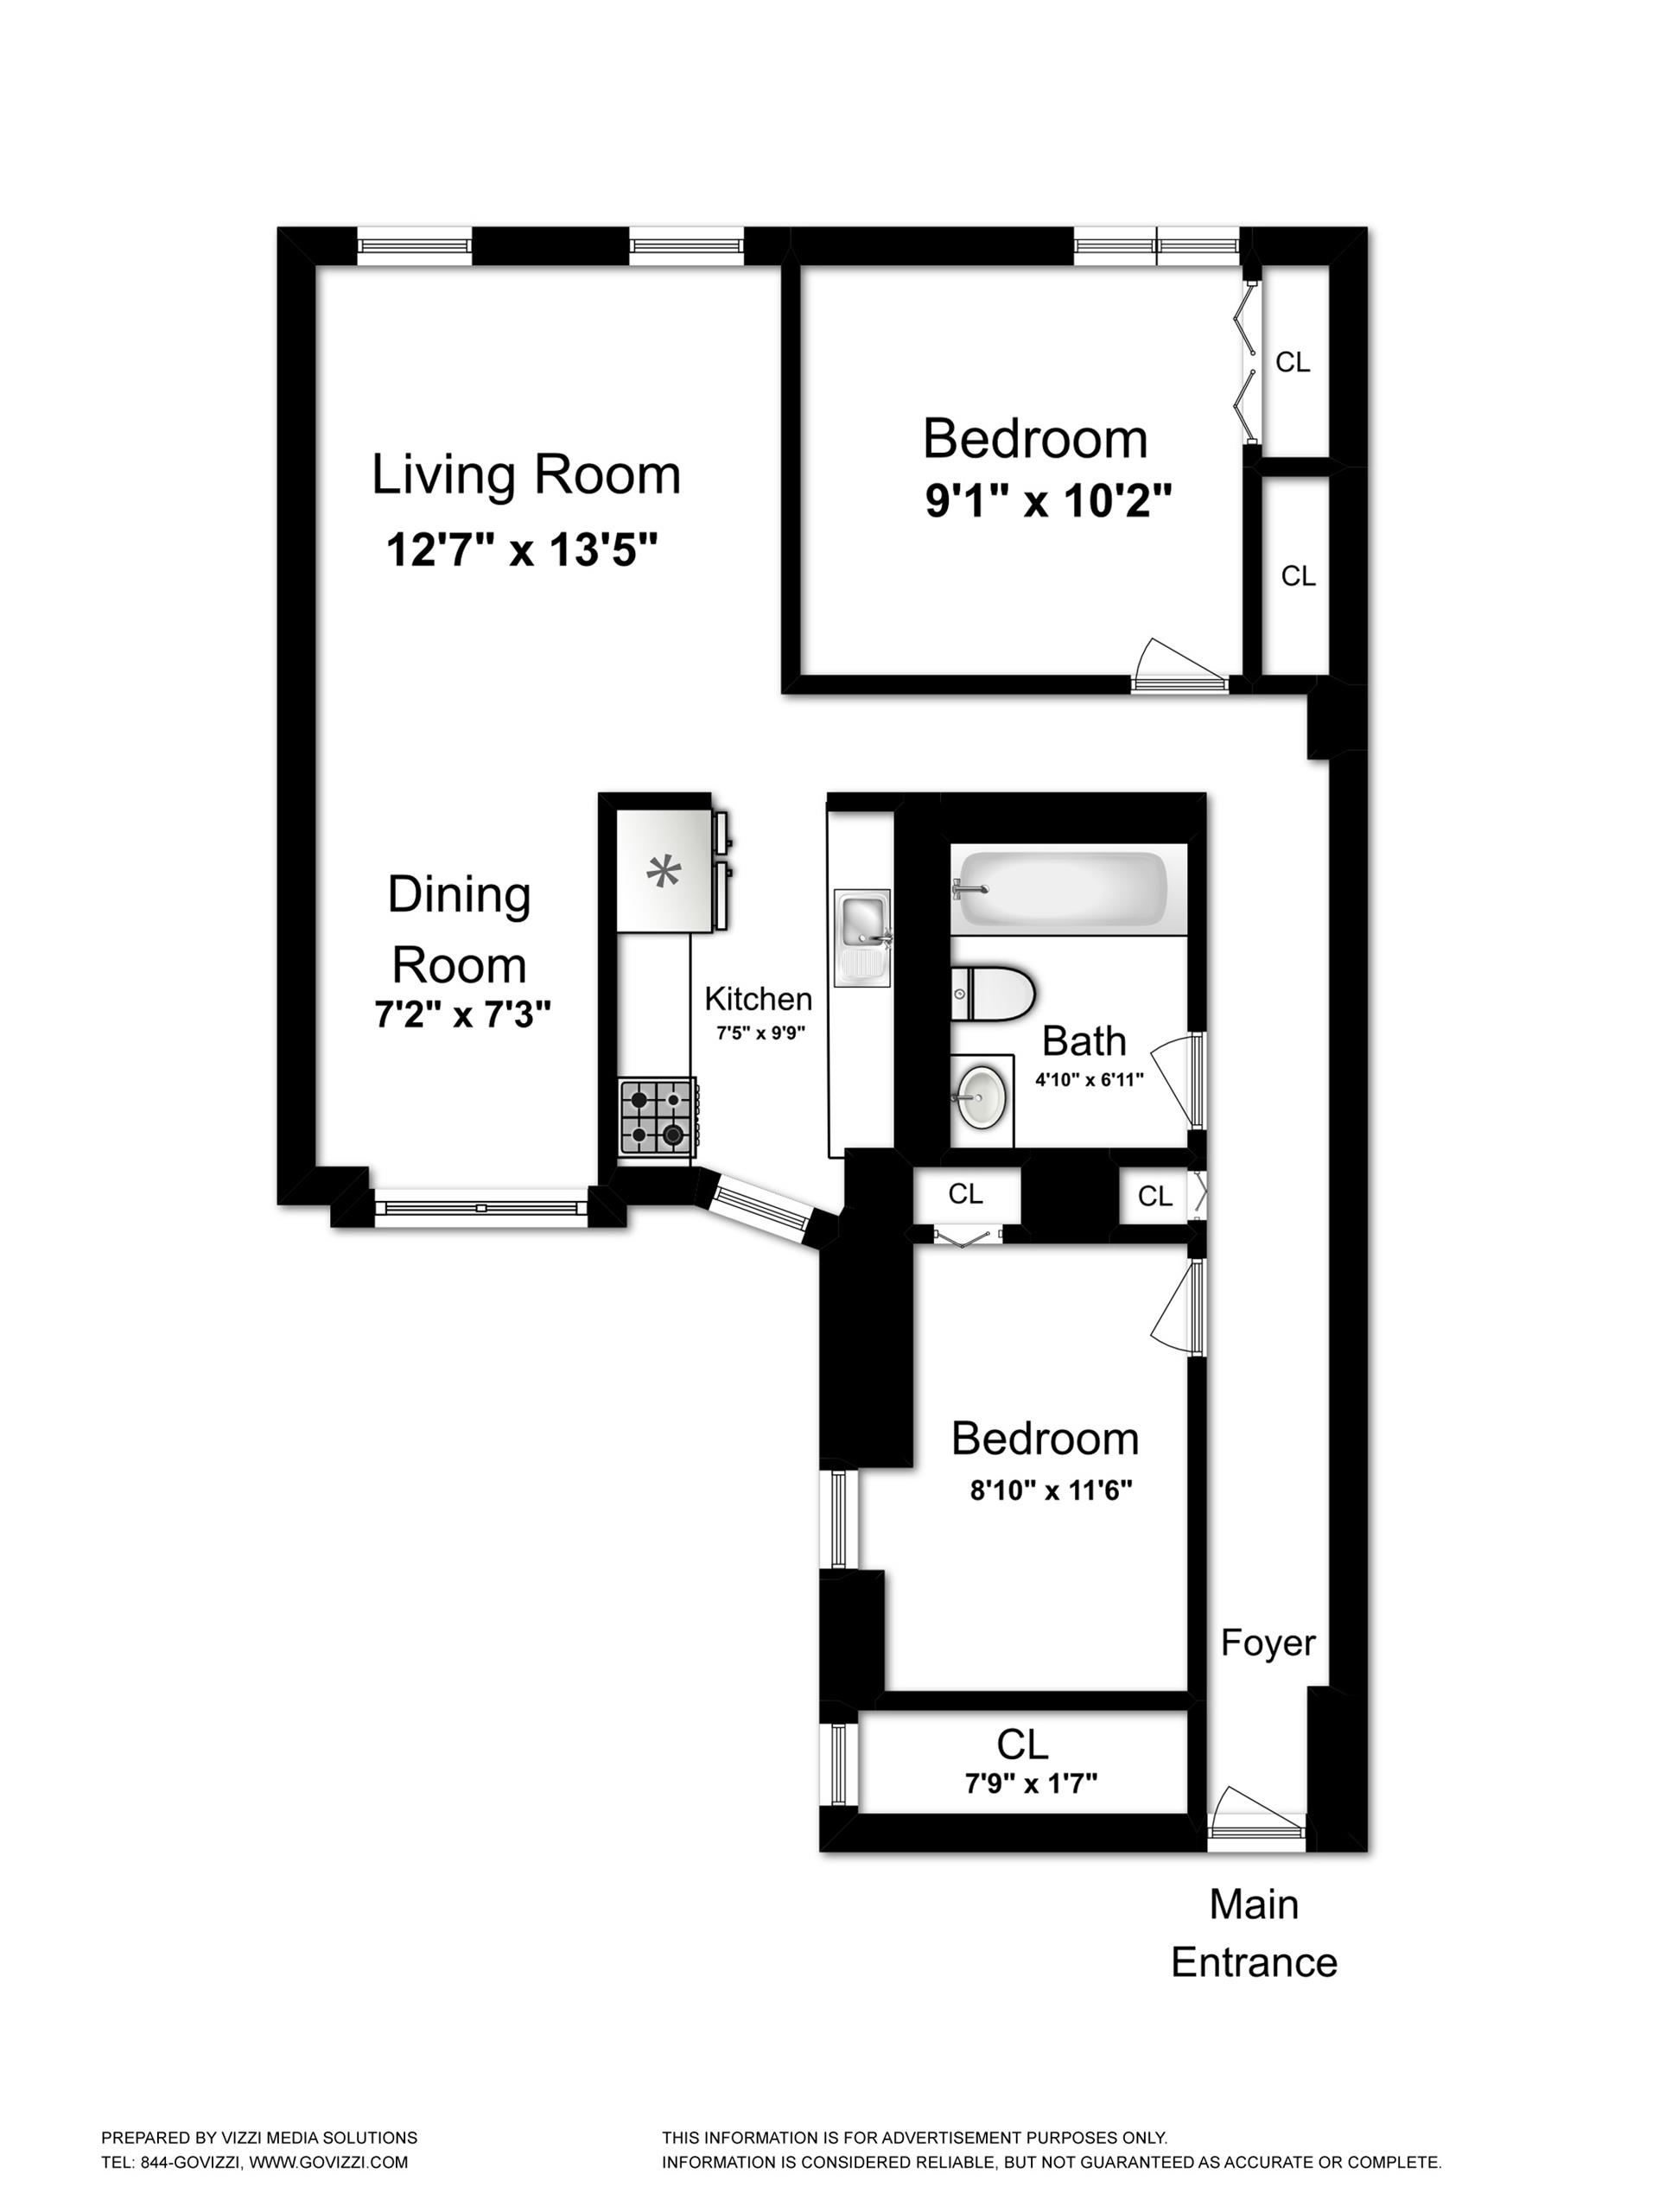 Floor plan of 11 Ten Eyck St, 2D - Williamsburg, New York